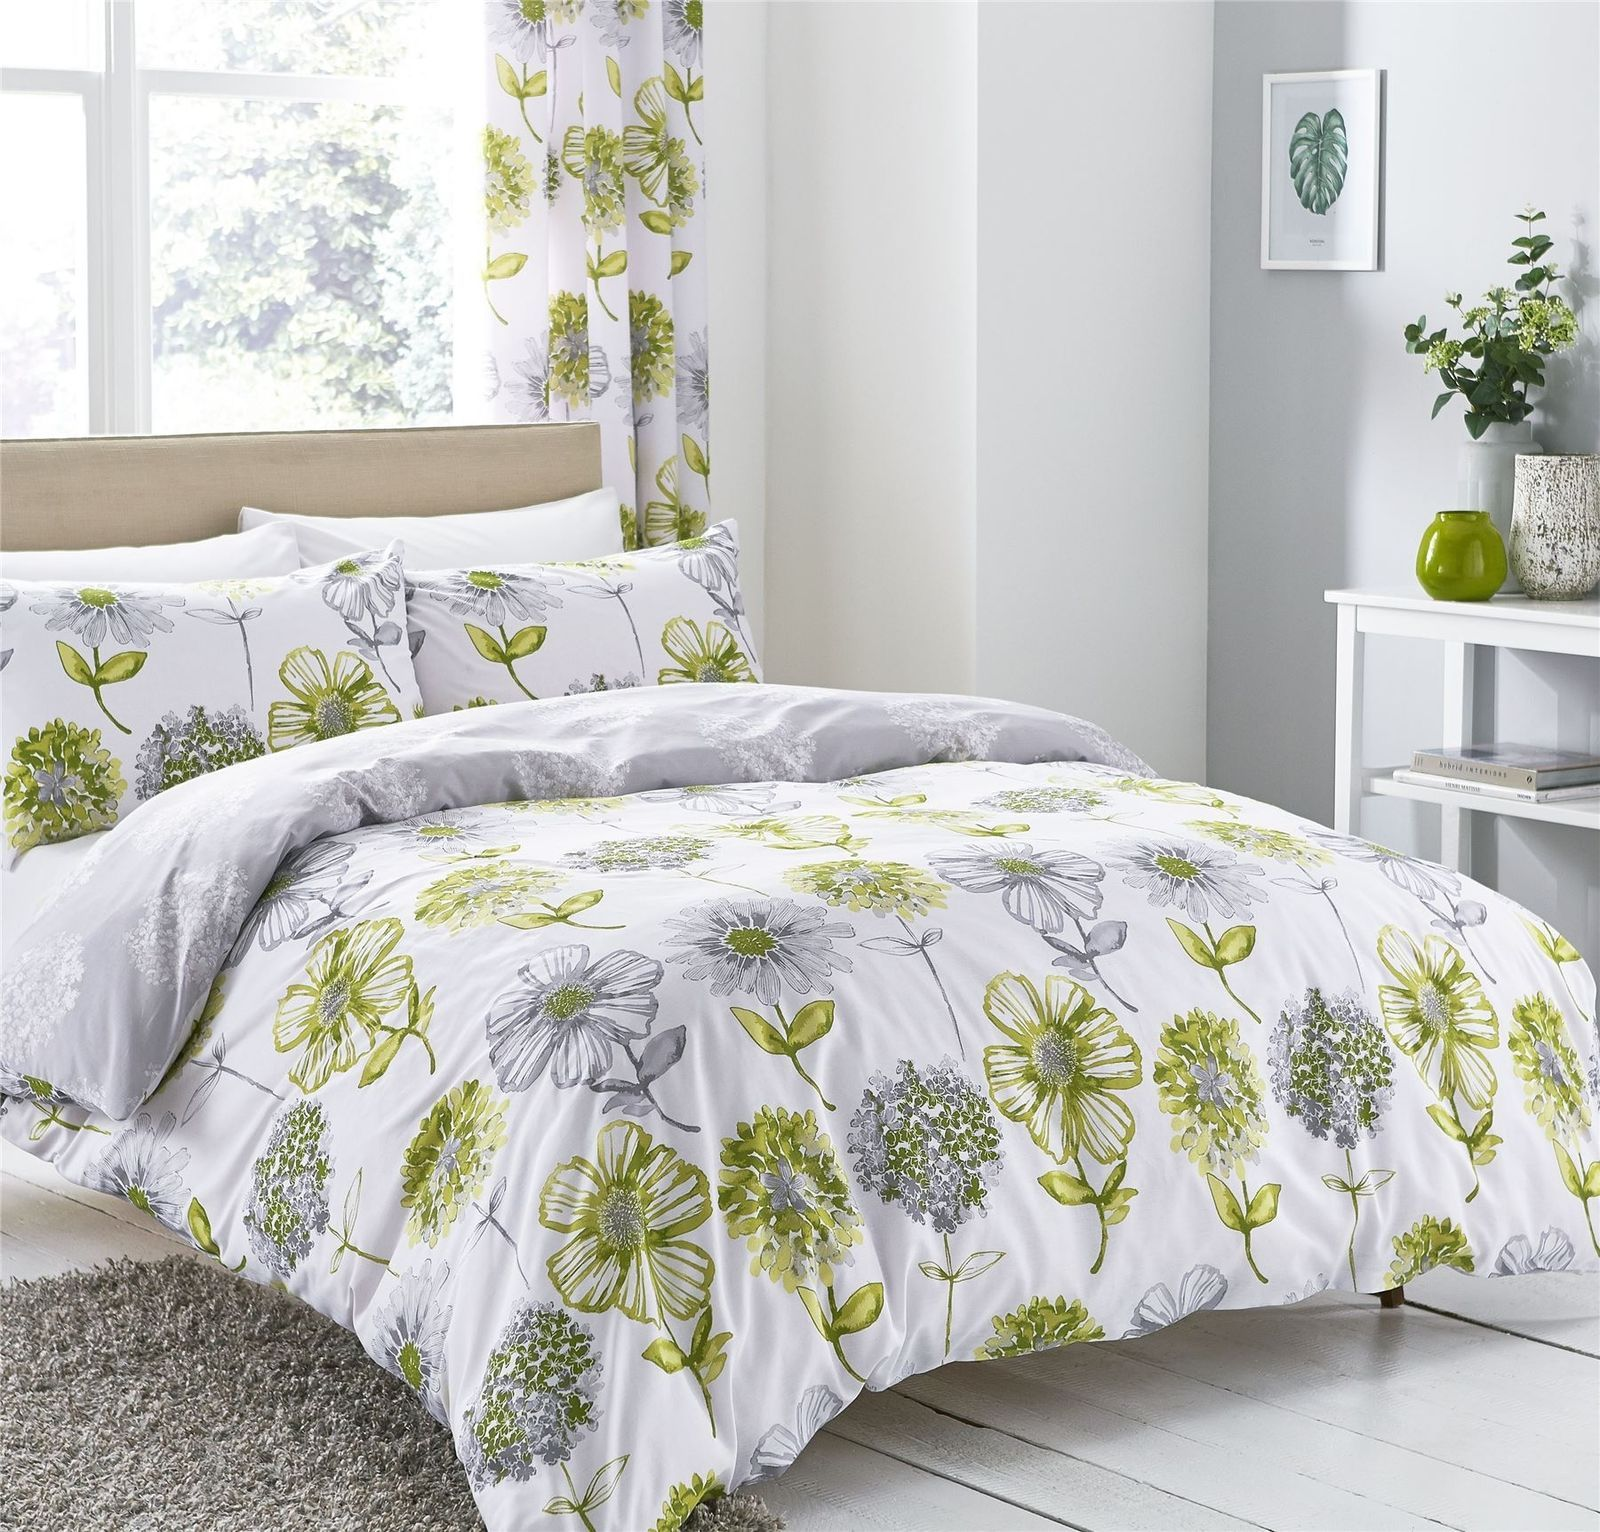 Watercolourstyle floral flowers green king size duvet coveruring